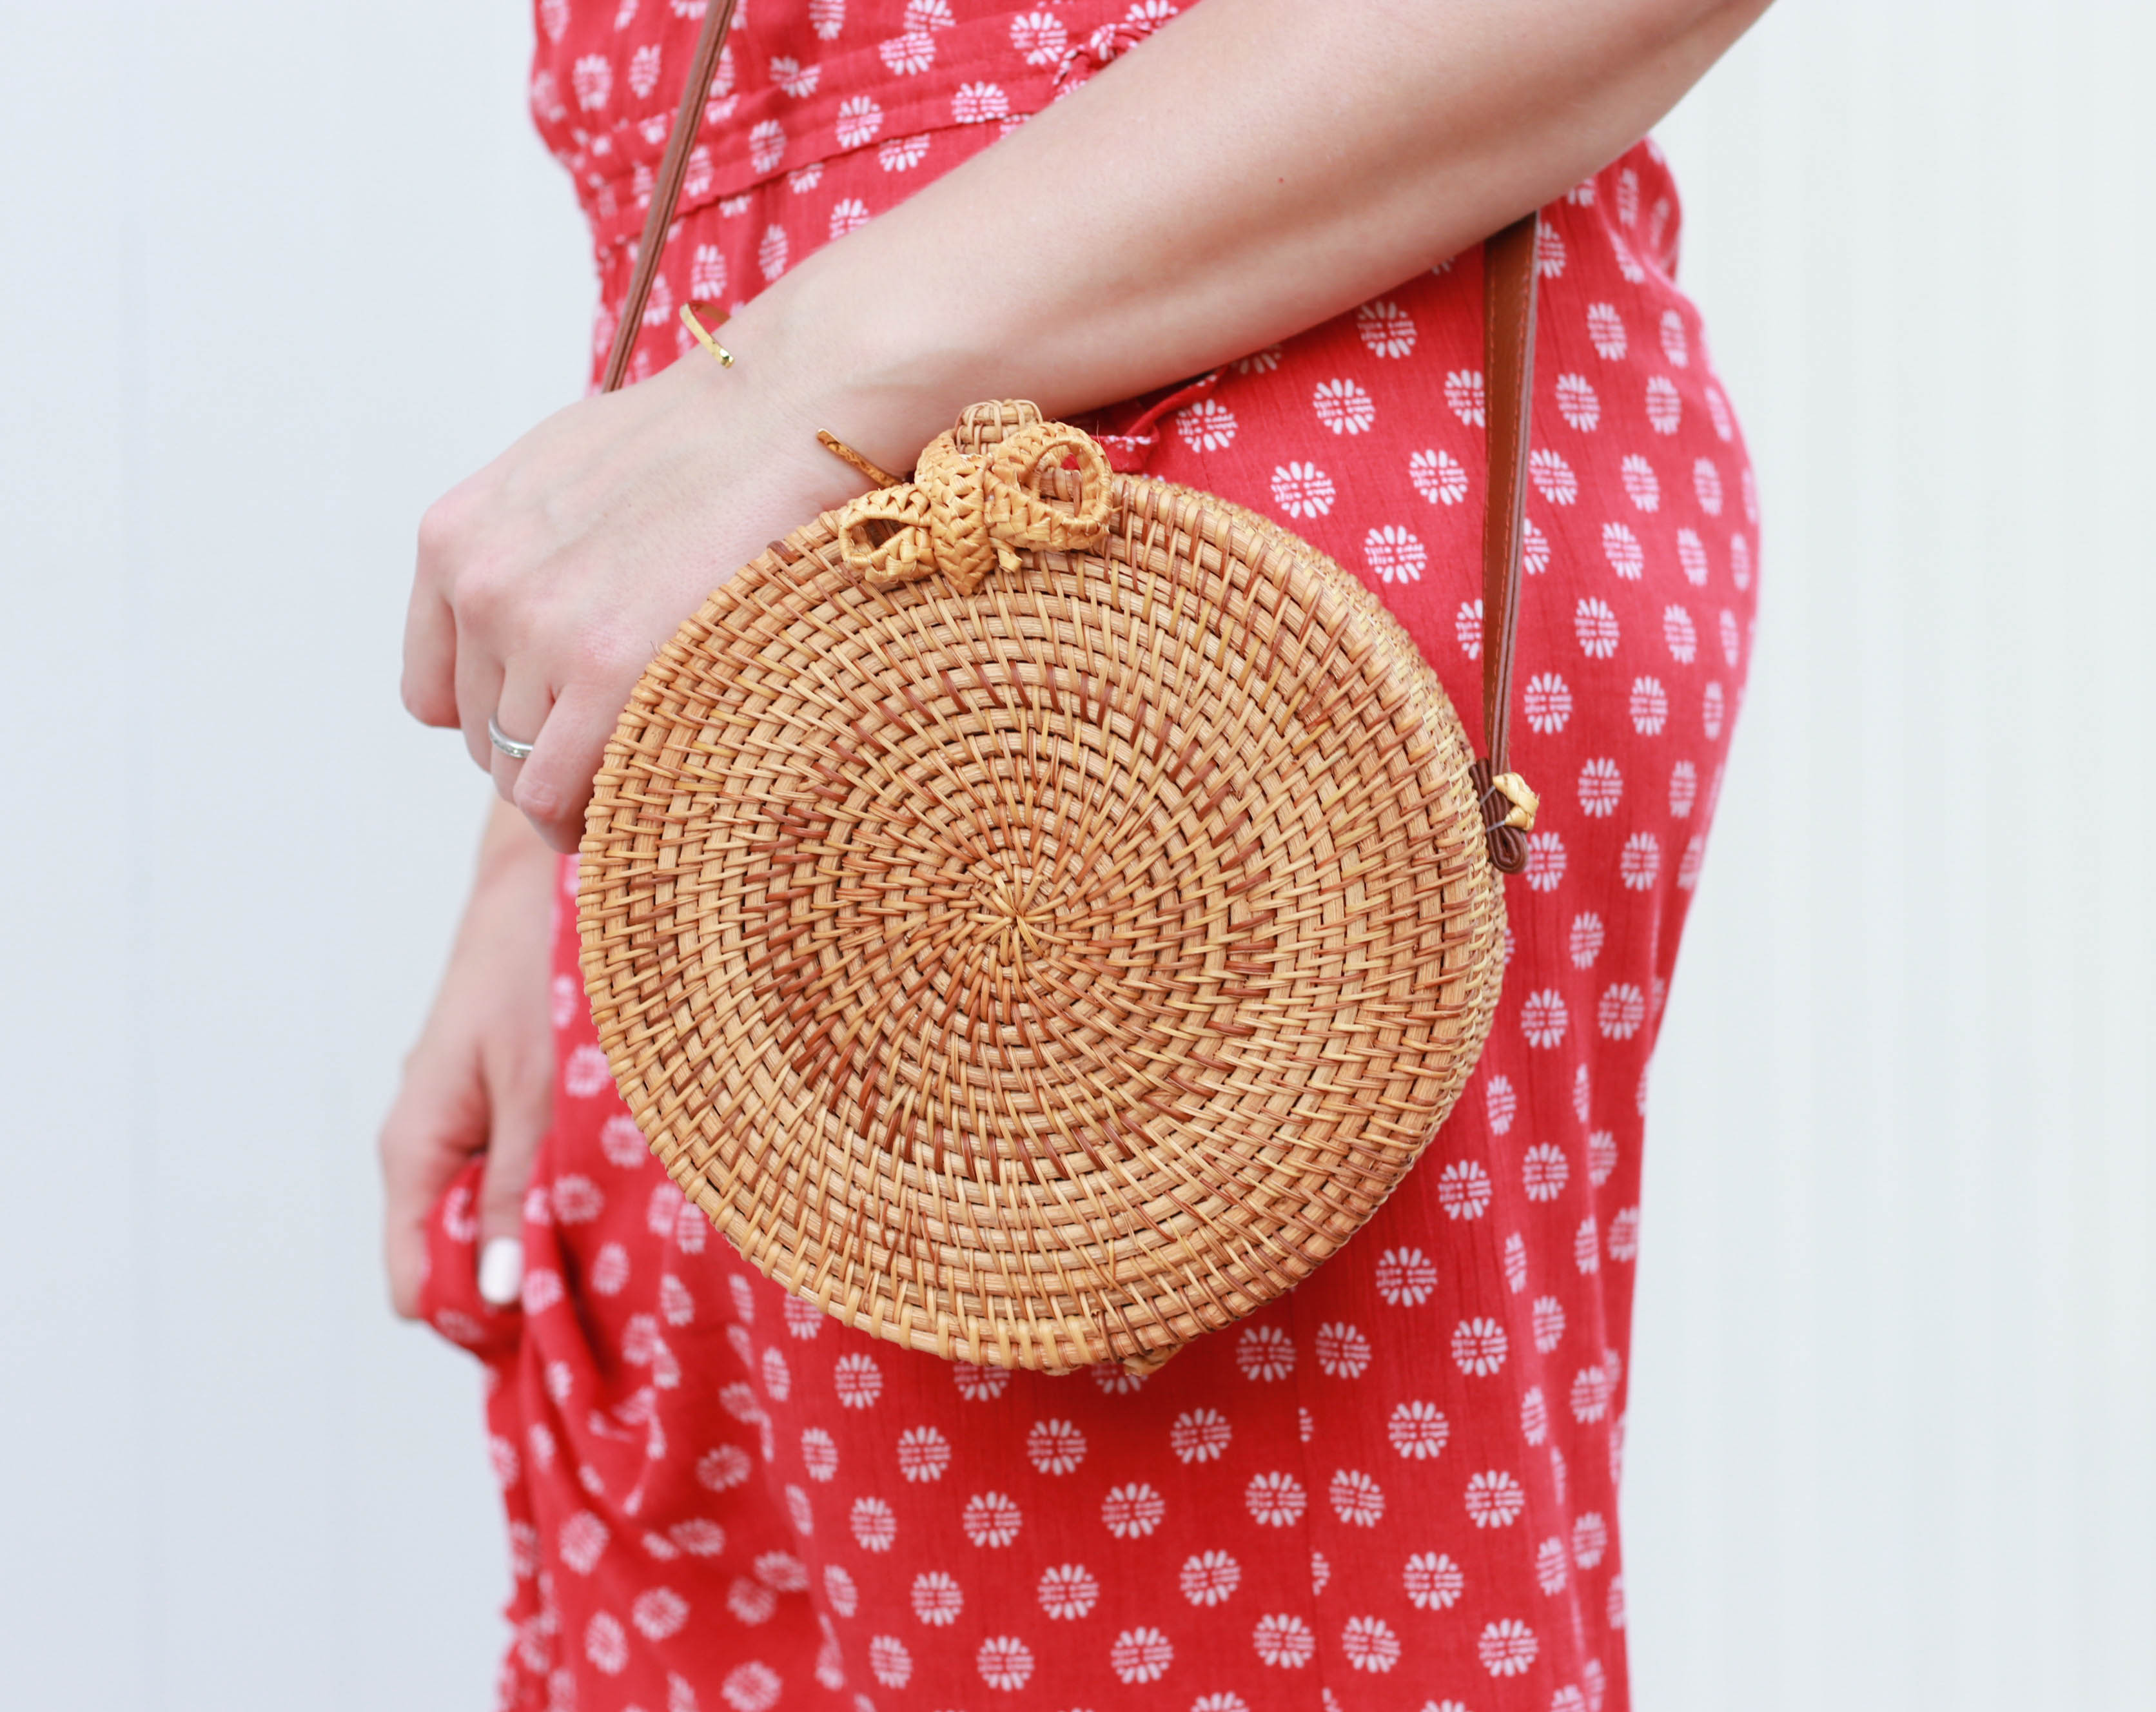 circle rattan bag #rattanbag #statementbag #outfitdetails